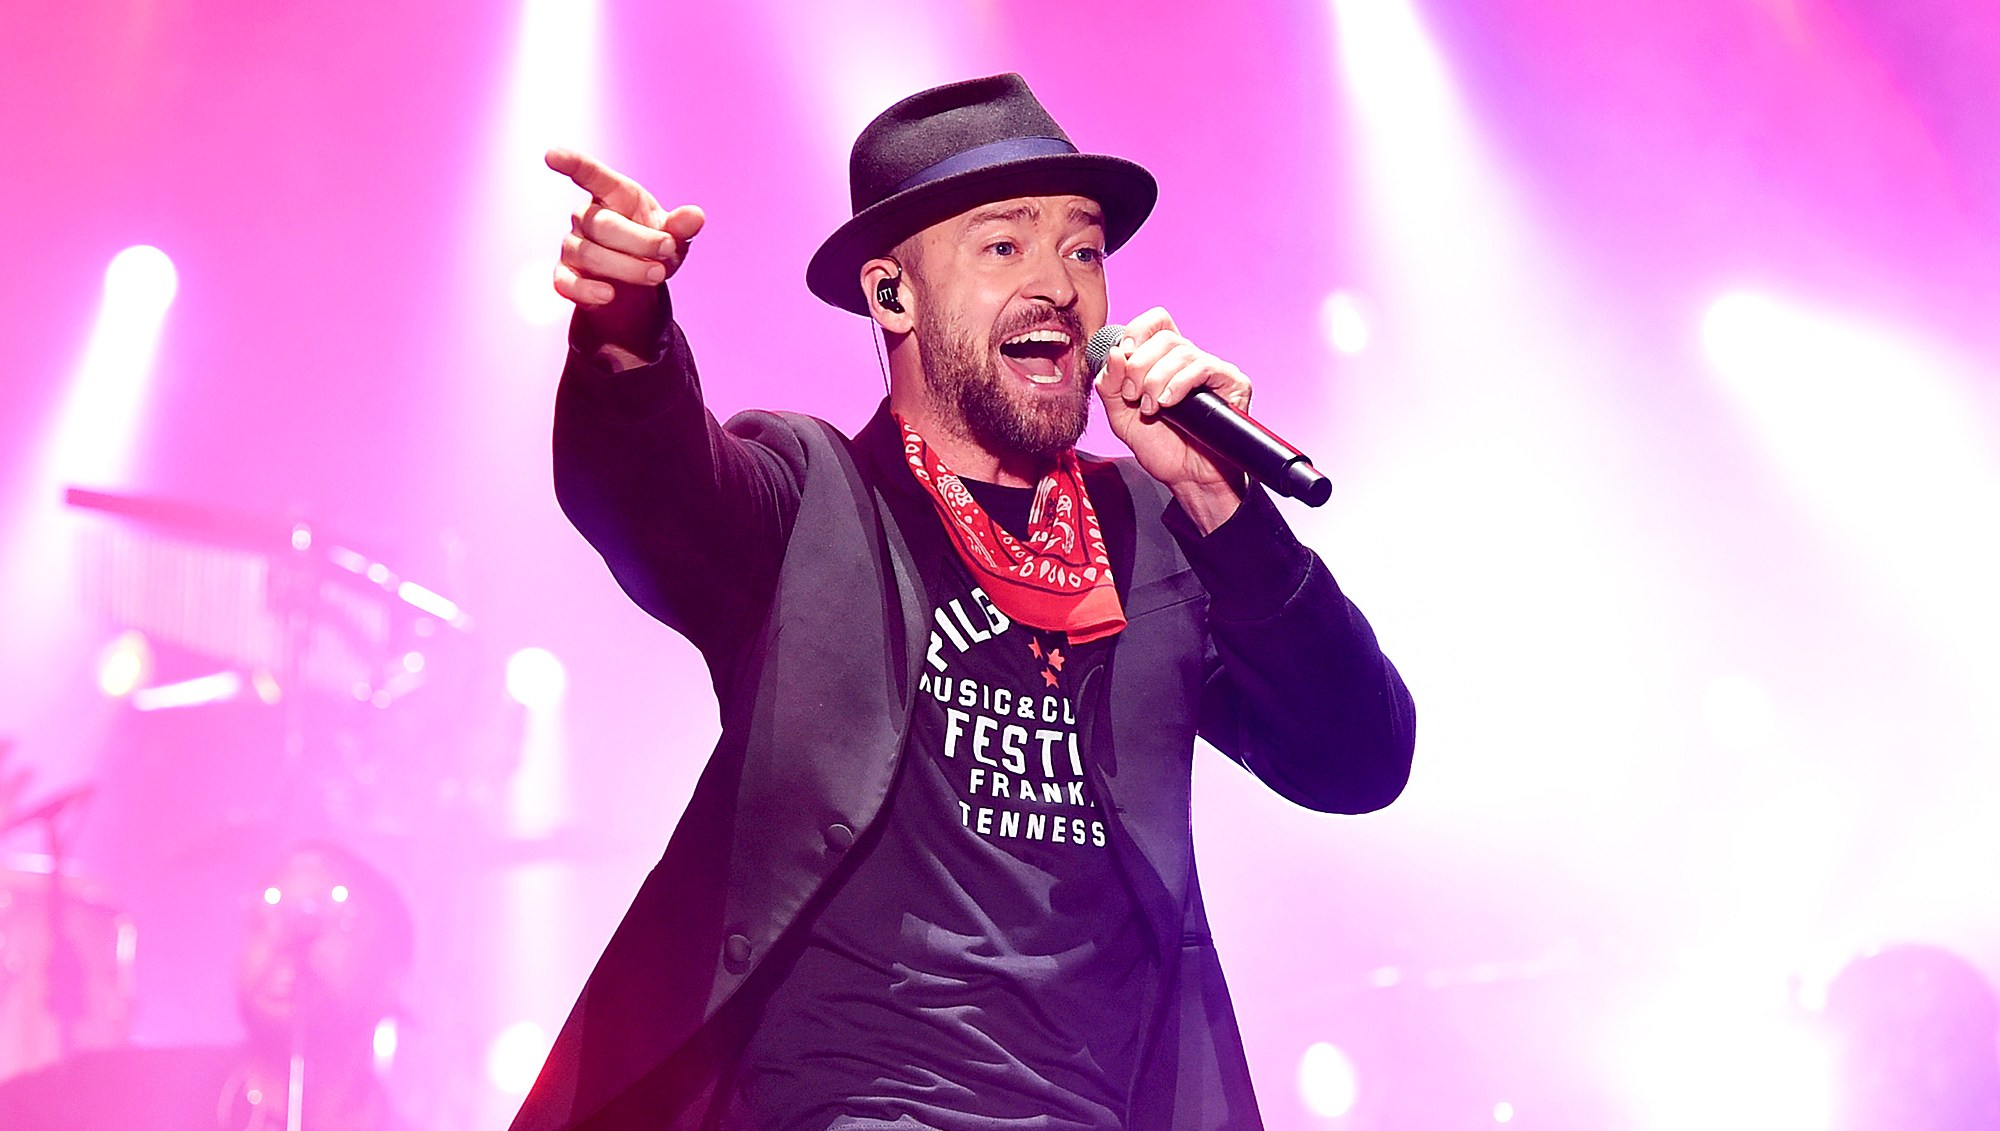 Justin Timberlake performs at the 2017 Pilgrimage Music & Cultural Festival in Franklin, Tennessee.